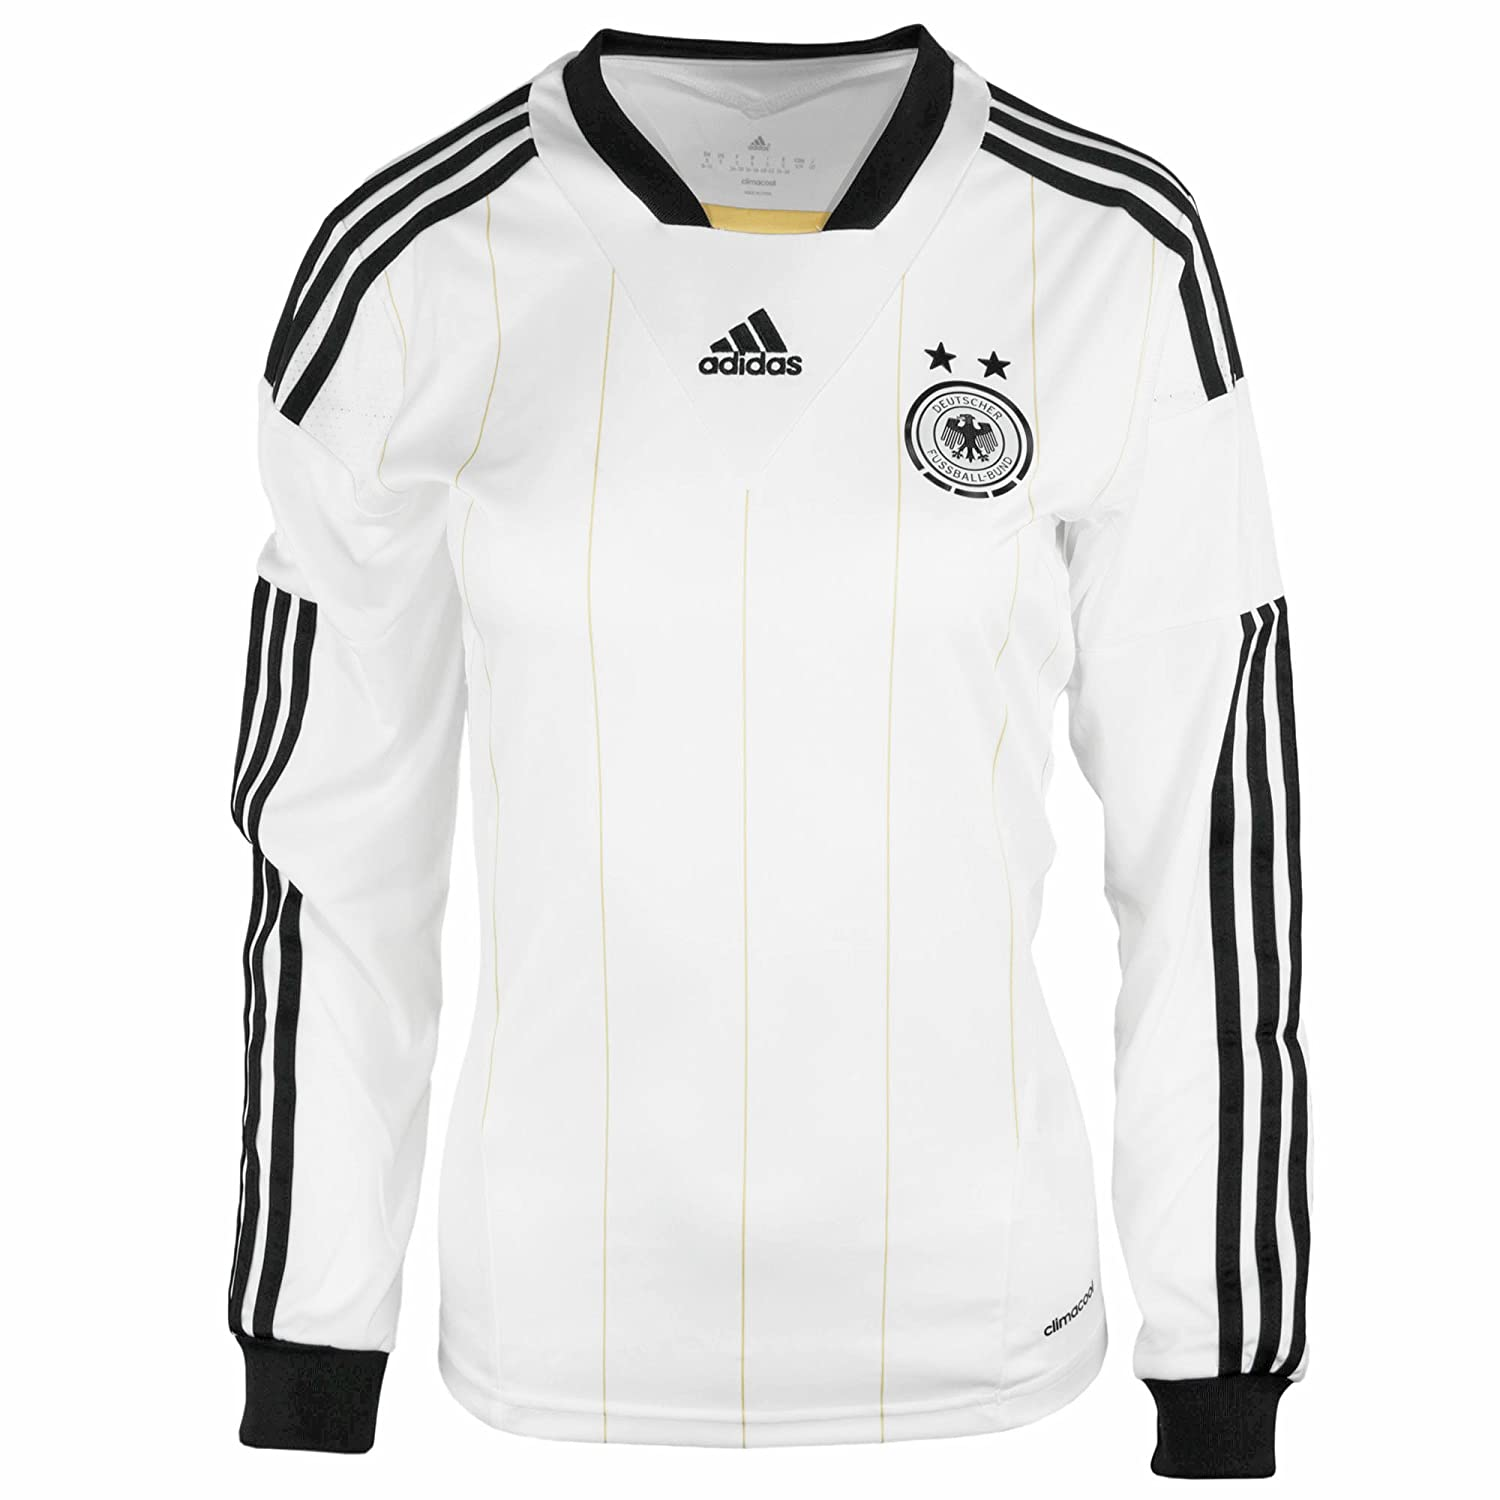 Adidas Germany womens long sleeve dfb home football shirt size large 16-18 Z53411